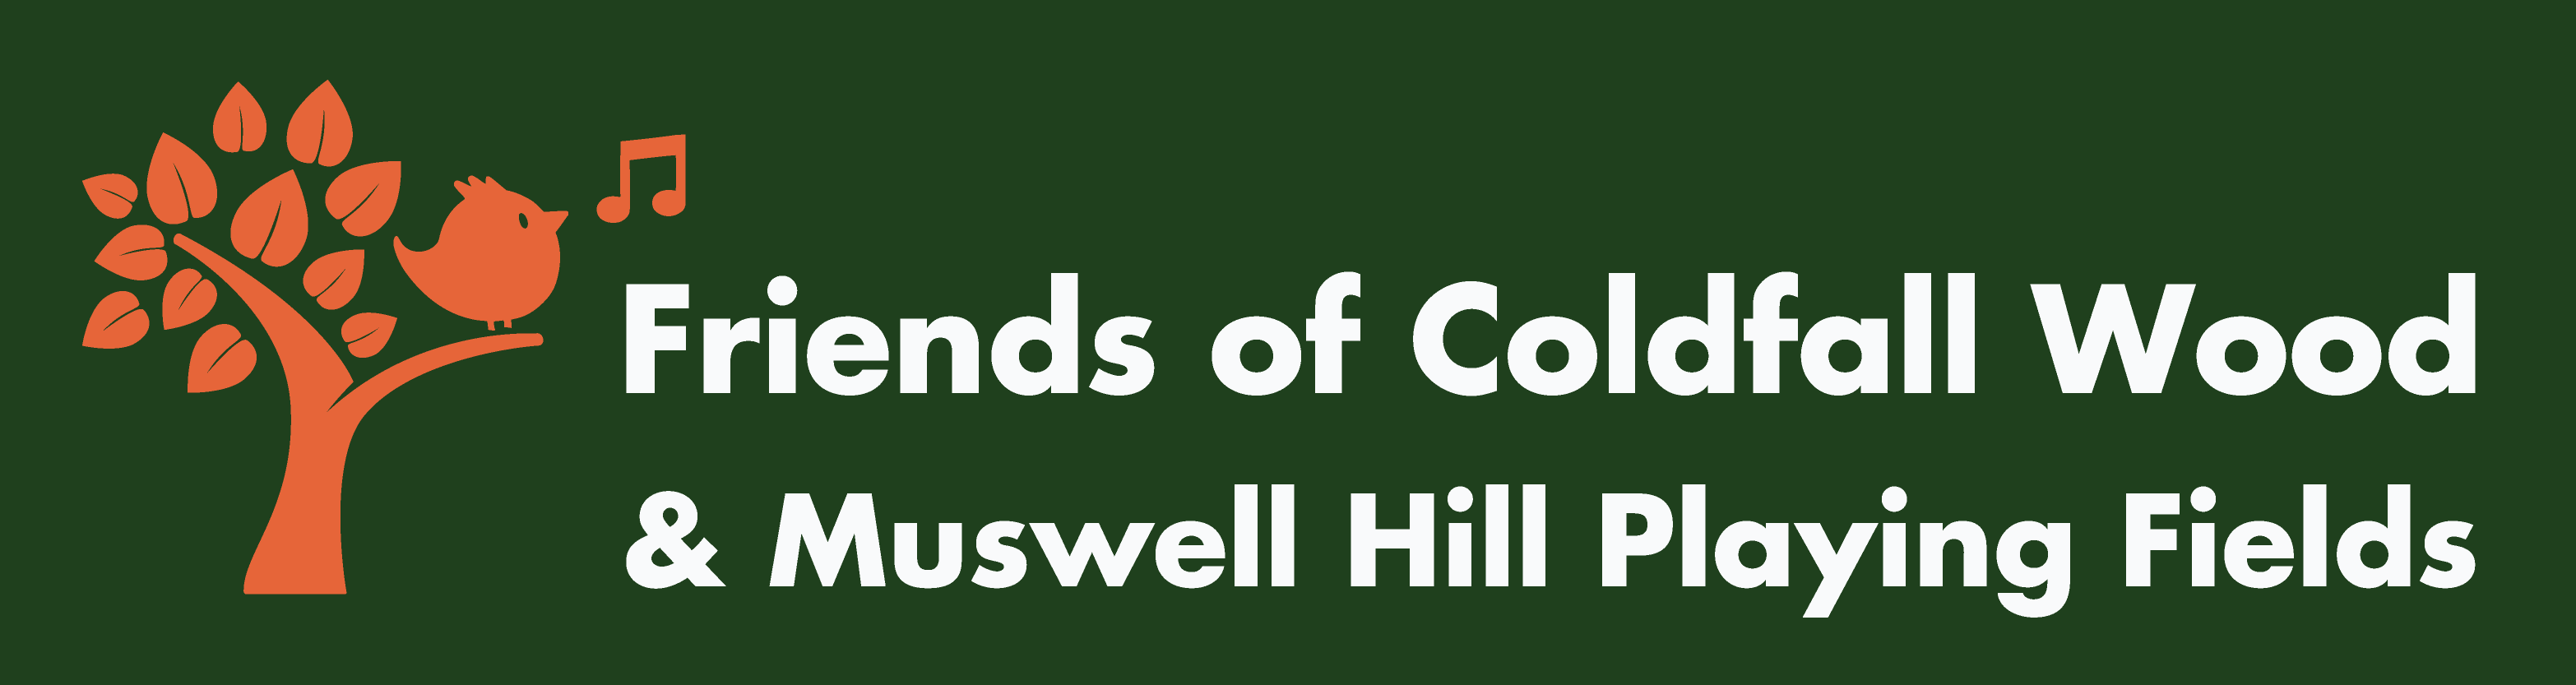 Friends of Coldfall Wood & Muswell Hill Playing Fields